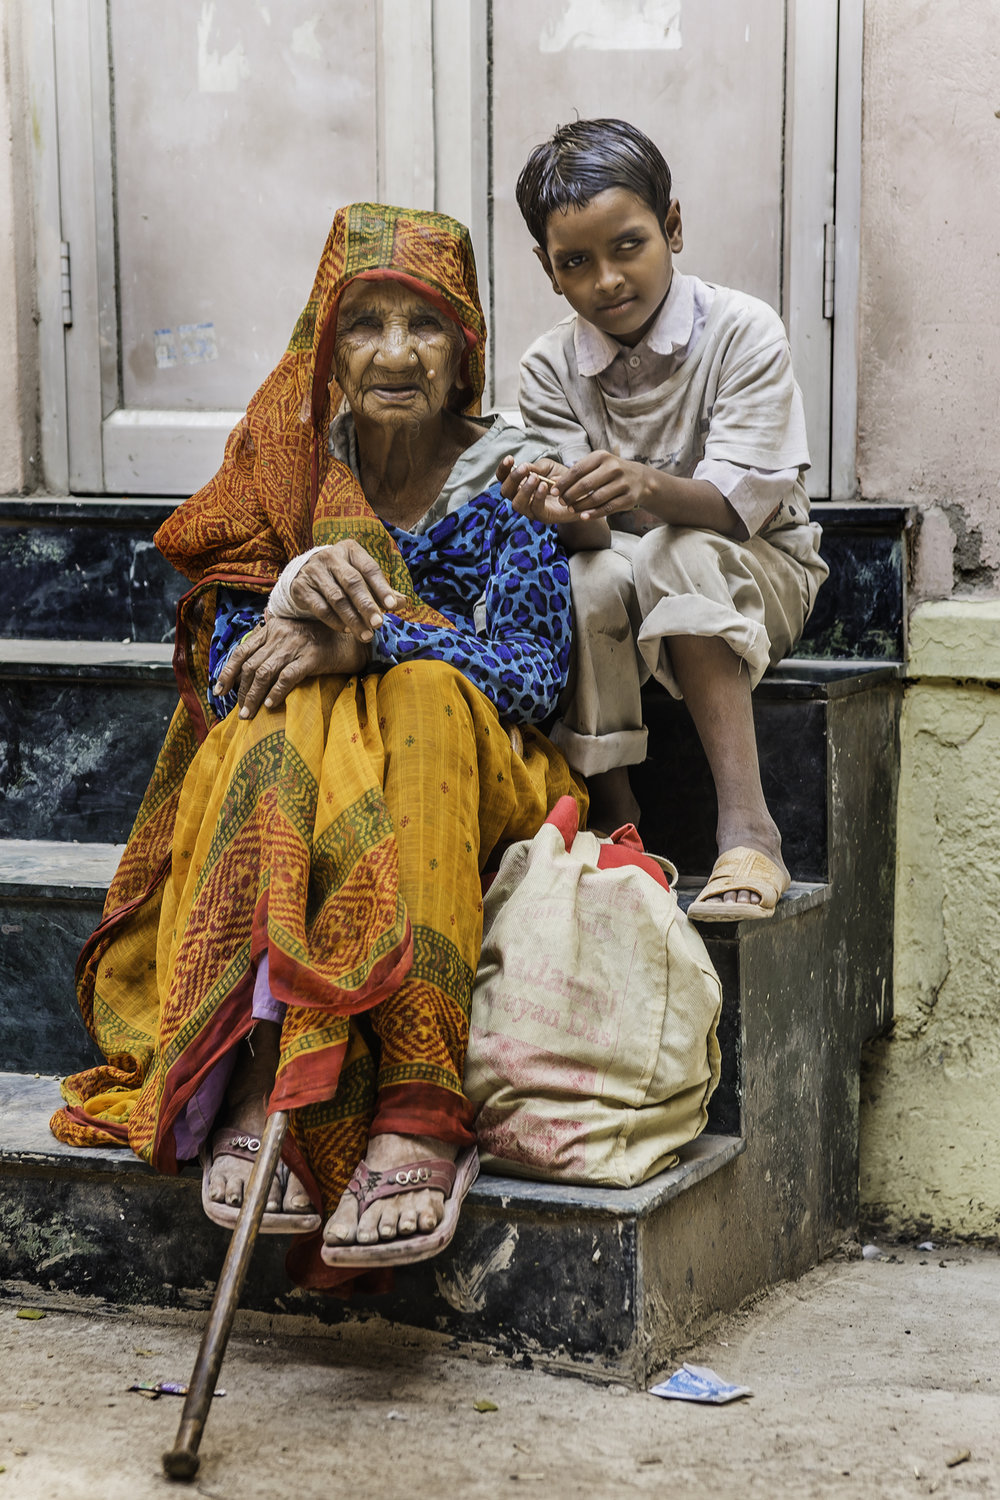 A grandma and her grandson have just sat down on their regular spot on a street in New Delhi.  They beg here all day.  I have managed to get them some rice and dal for lunch while I sat with them for a while.  They were grateful.